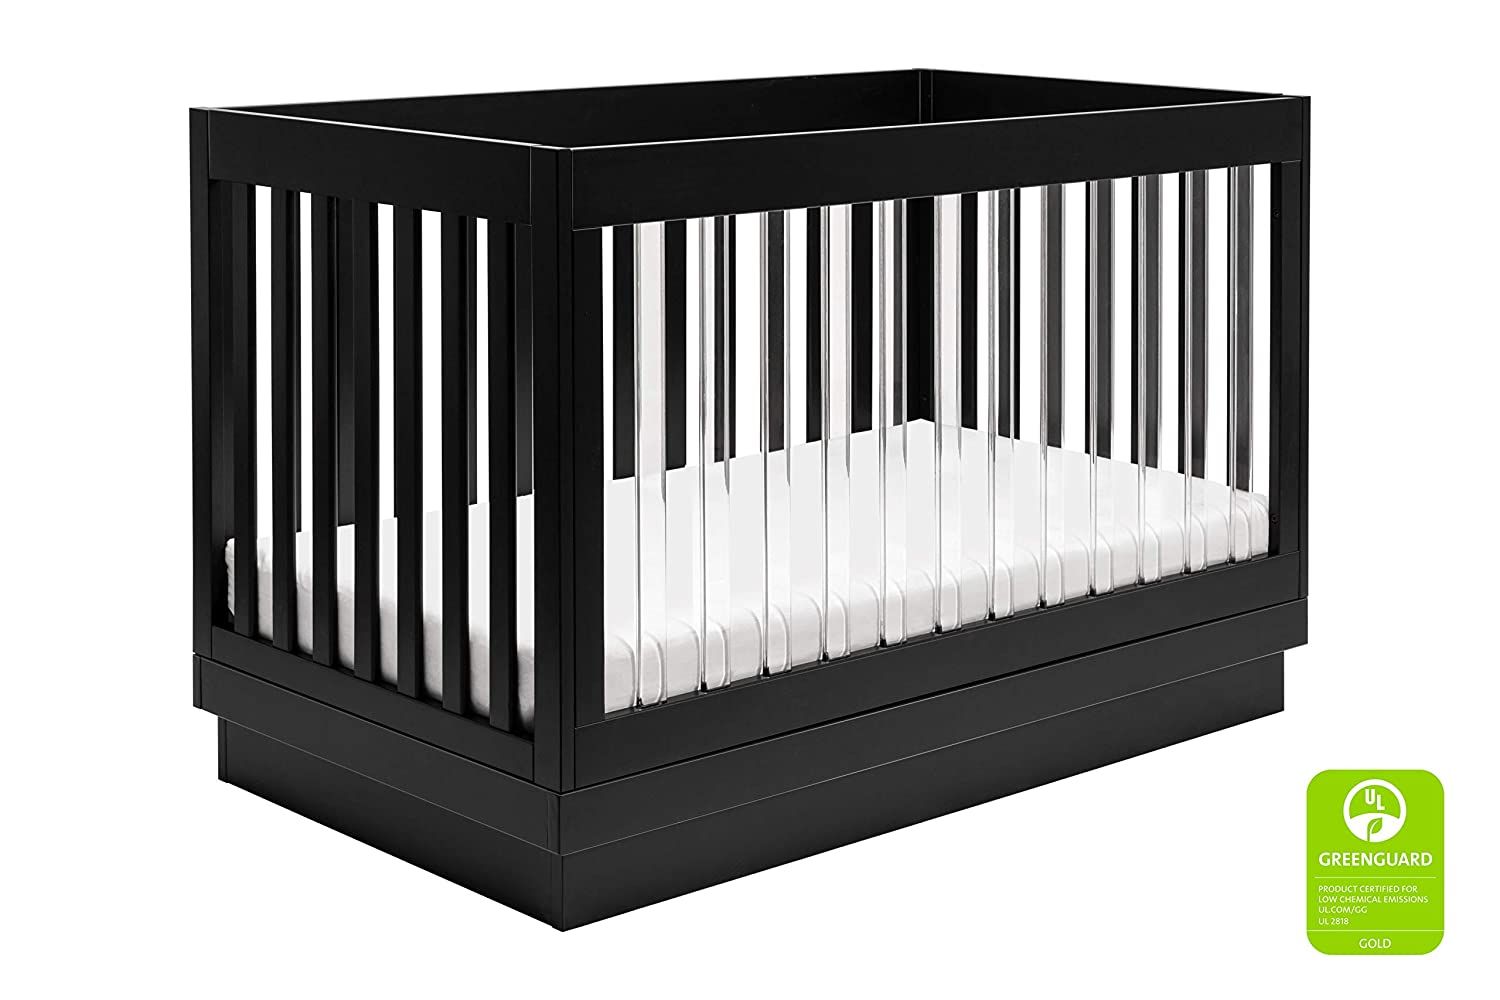 Babyletto Harlow Acrylic 3-in-1 Convertible Crib with Toddler Bed Conversion Kit, Black with Black Base and Acrylic Slats